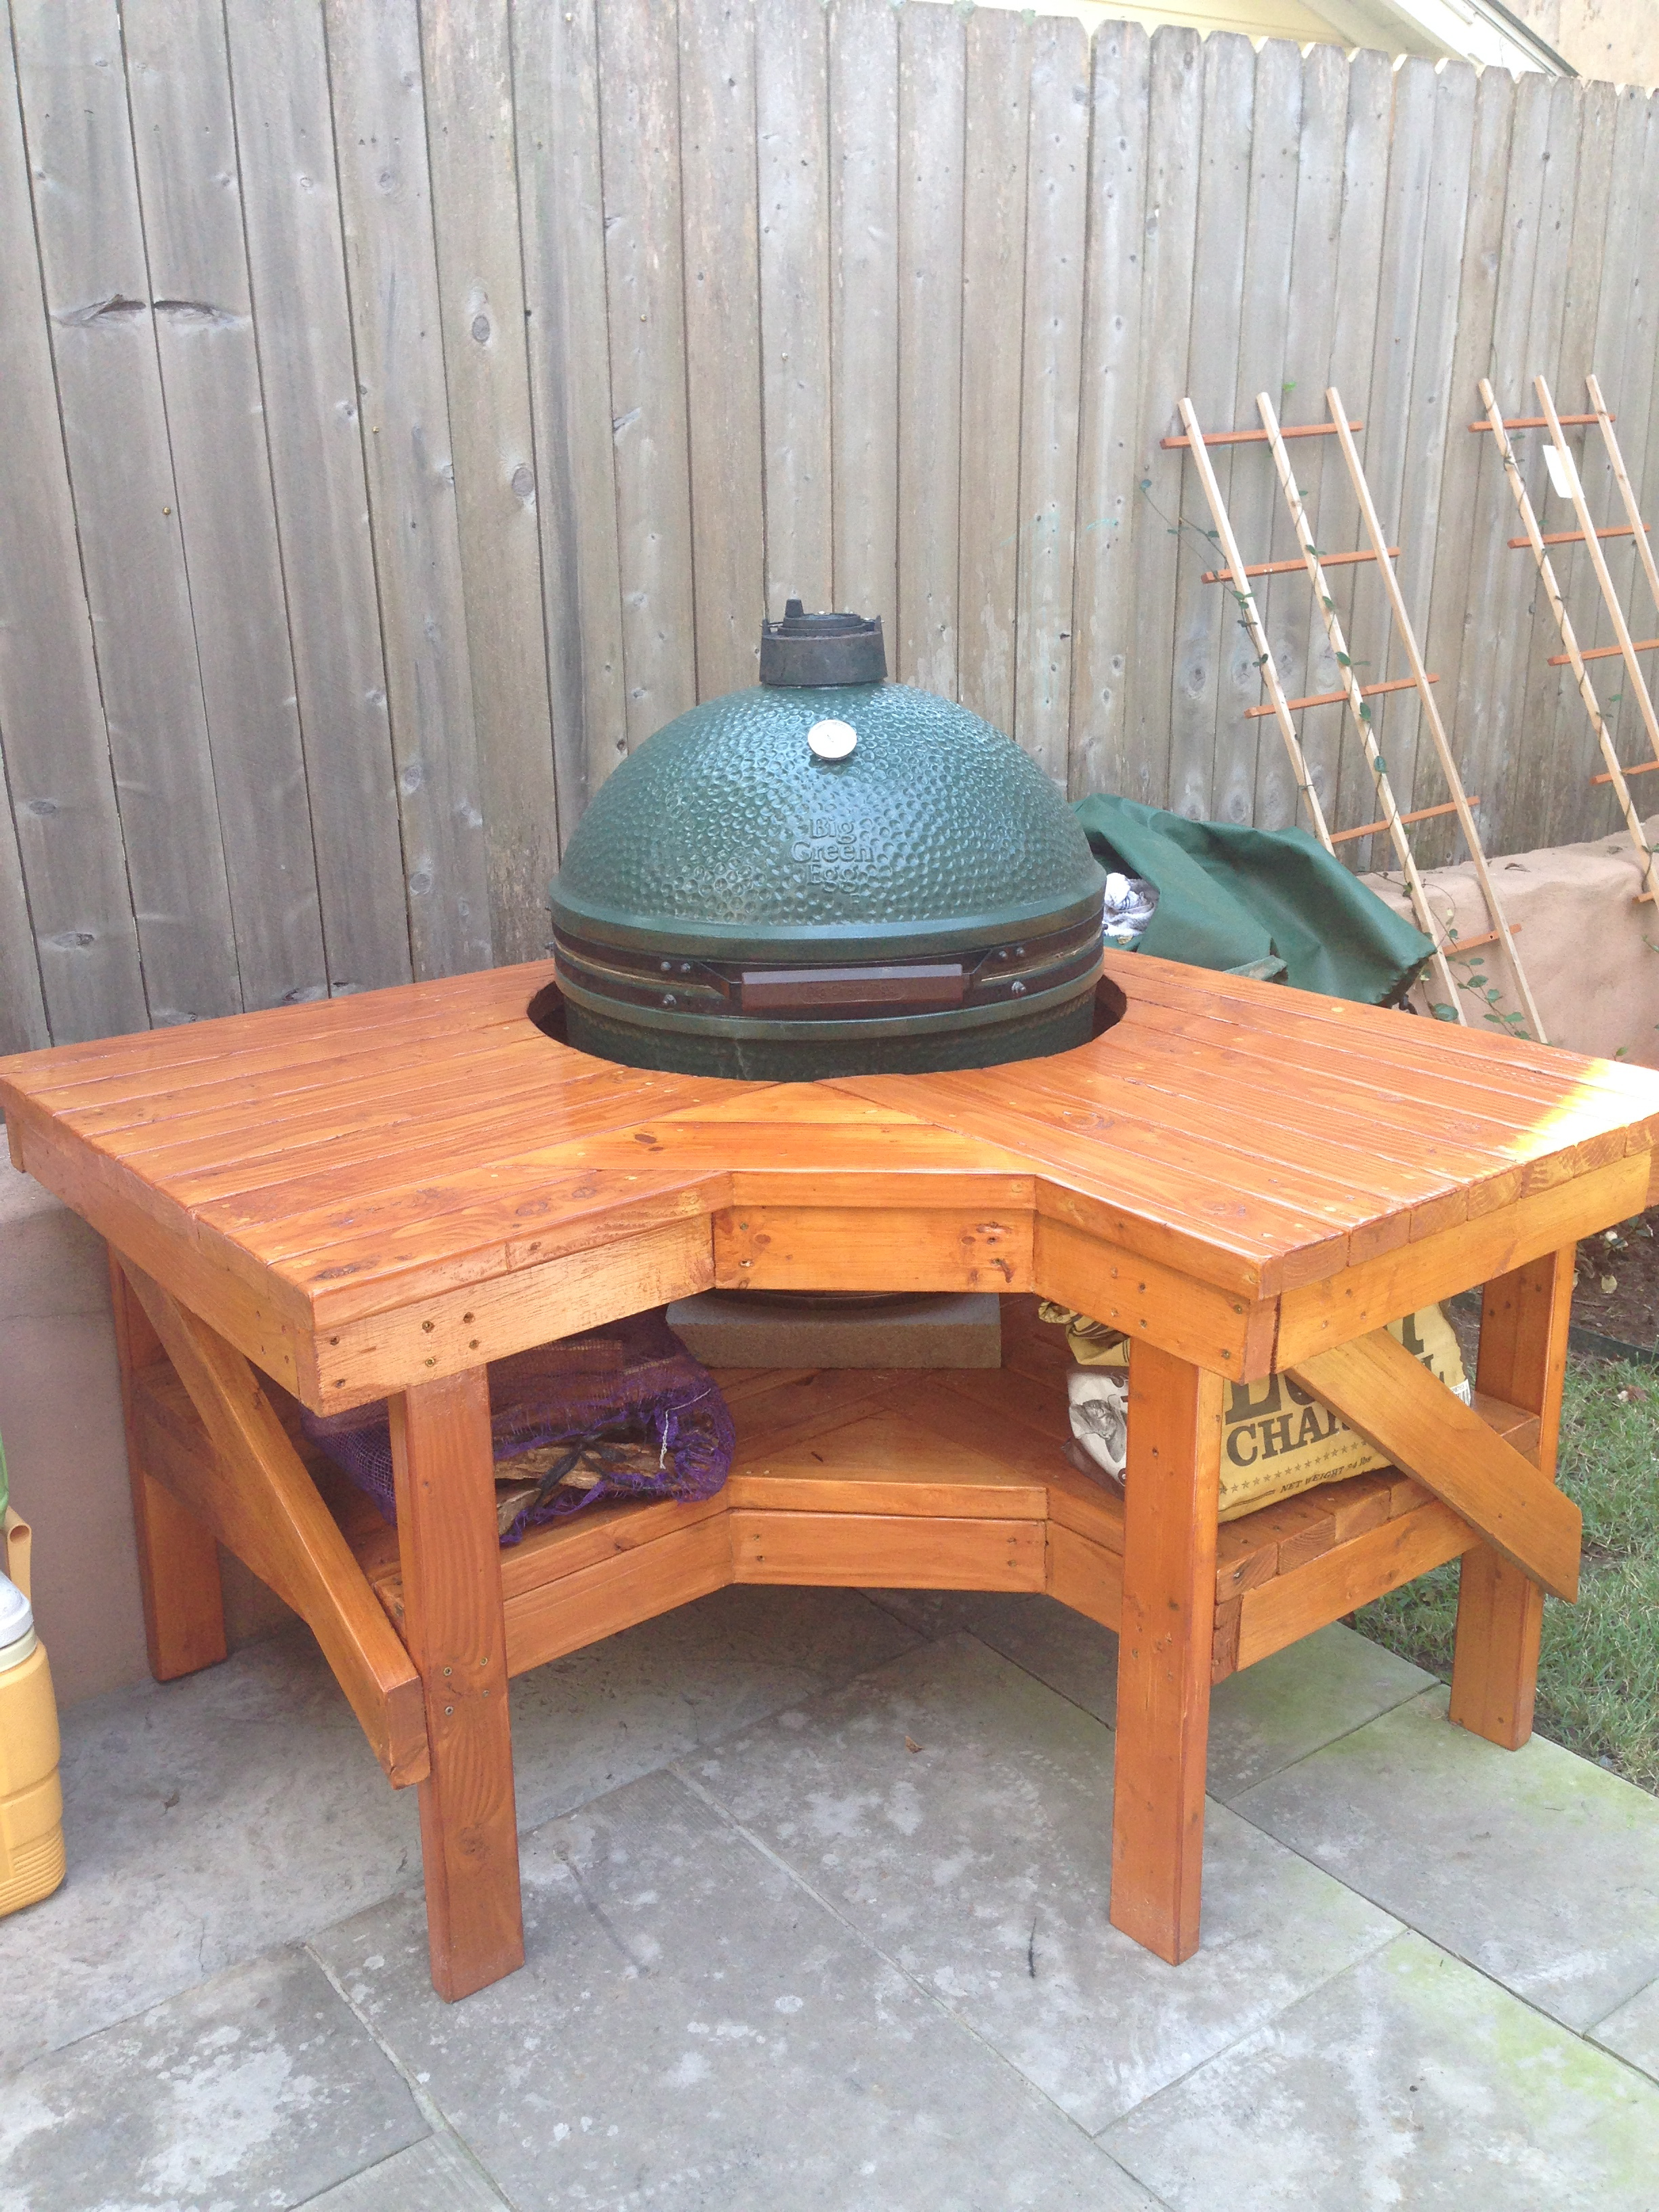 IMG 3818. New Big Green Egg Table Designs from Bird Dog Wood Designs   Big